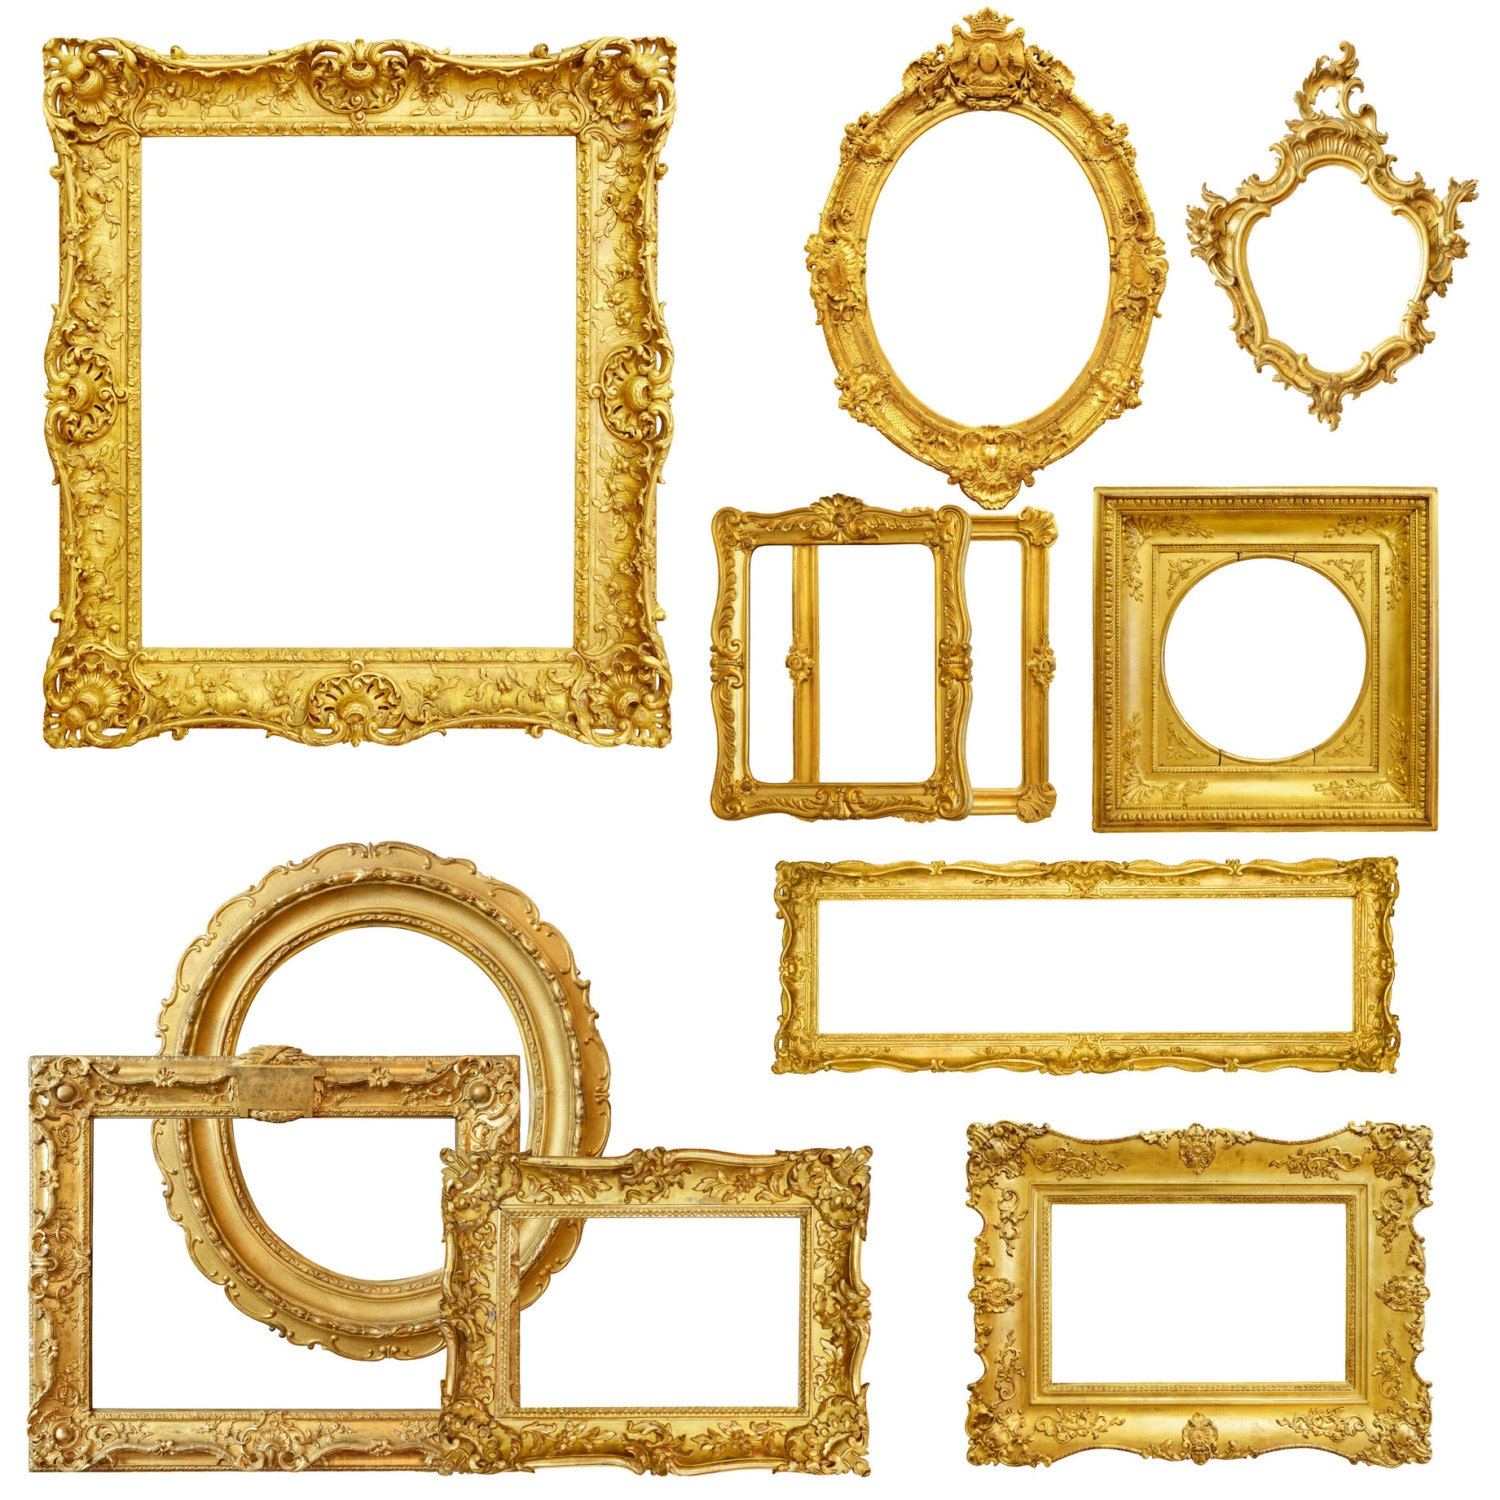 Gold Picture Frame Clipart, Digital Picture Frames, Frame Clip Art ... for Ornate Picture Frame Clip Art  166kxo